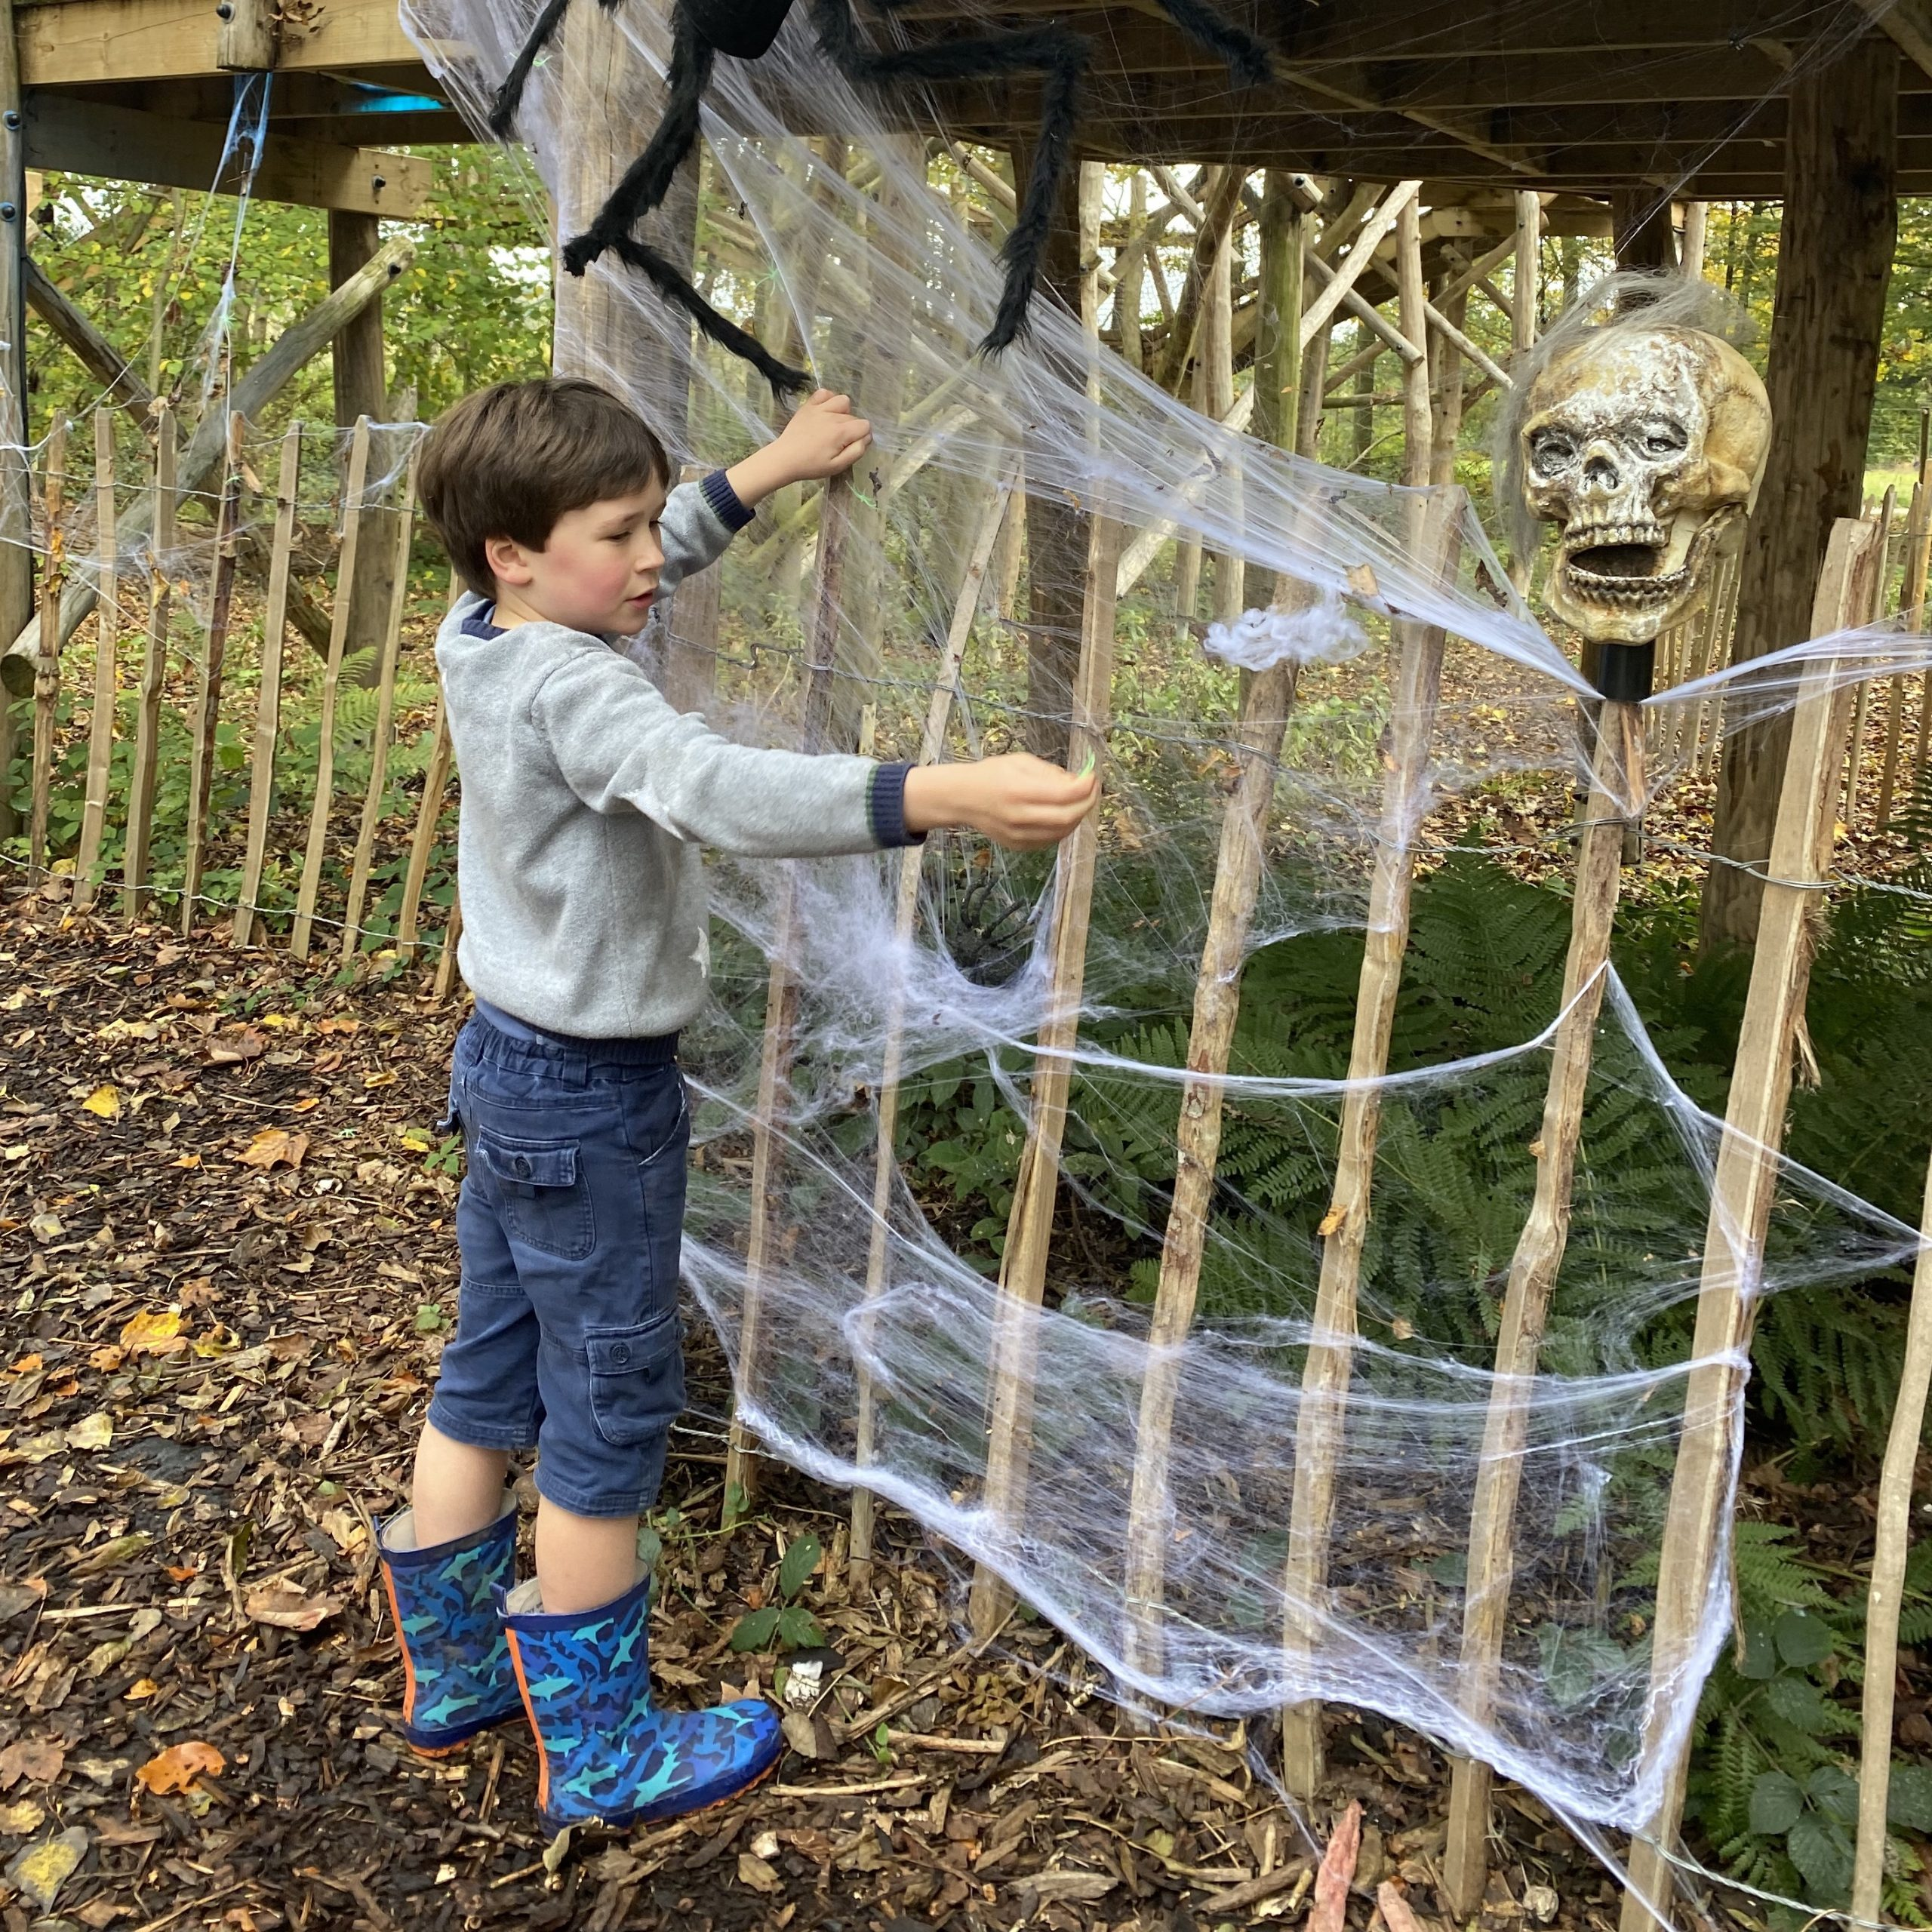 a boy playing with spooky webs on a climbing frame